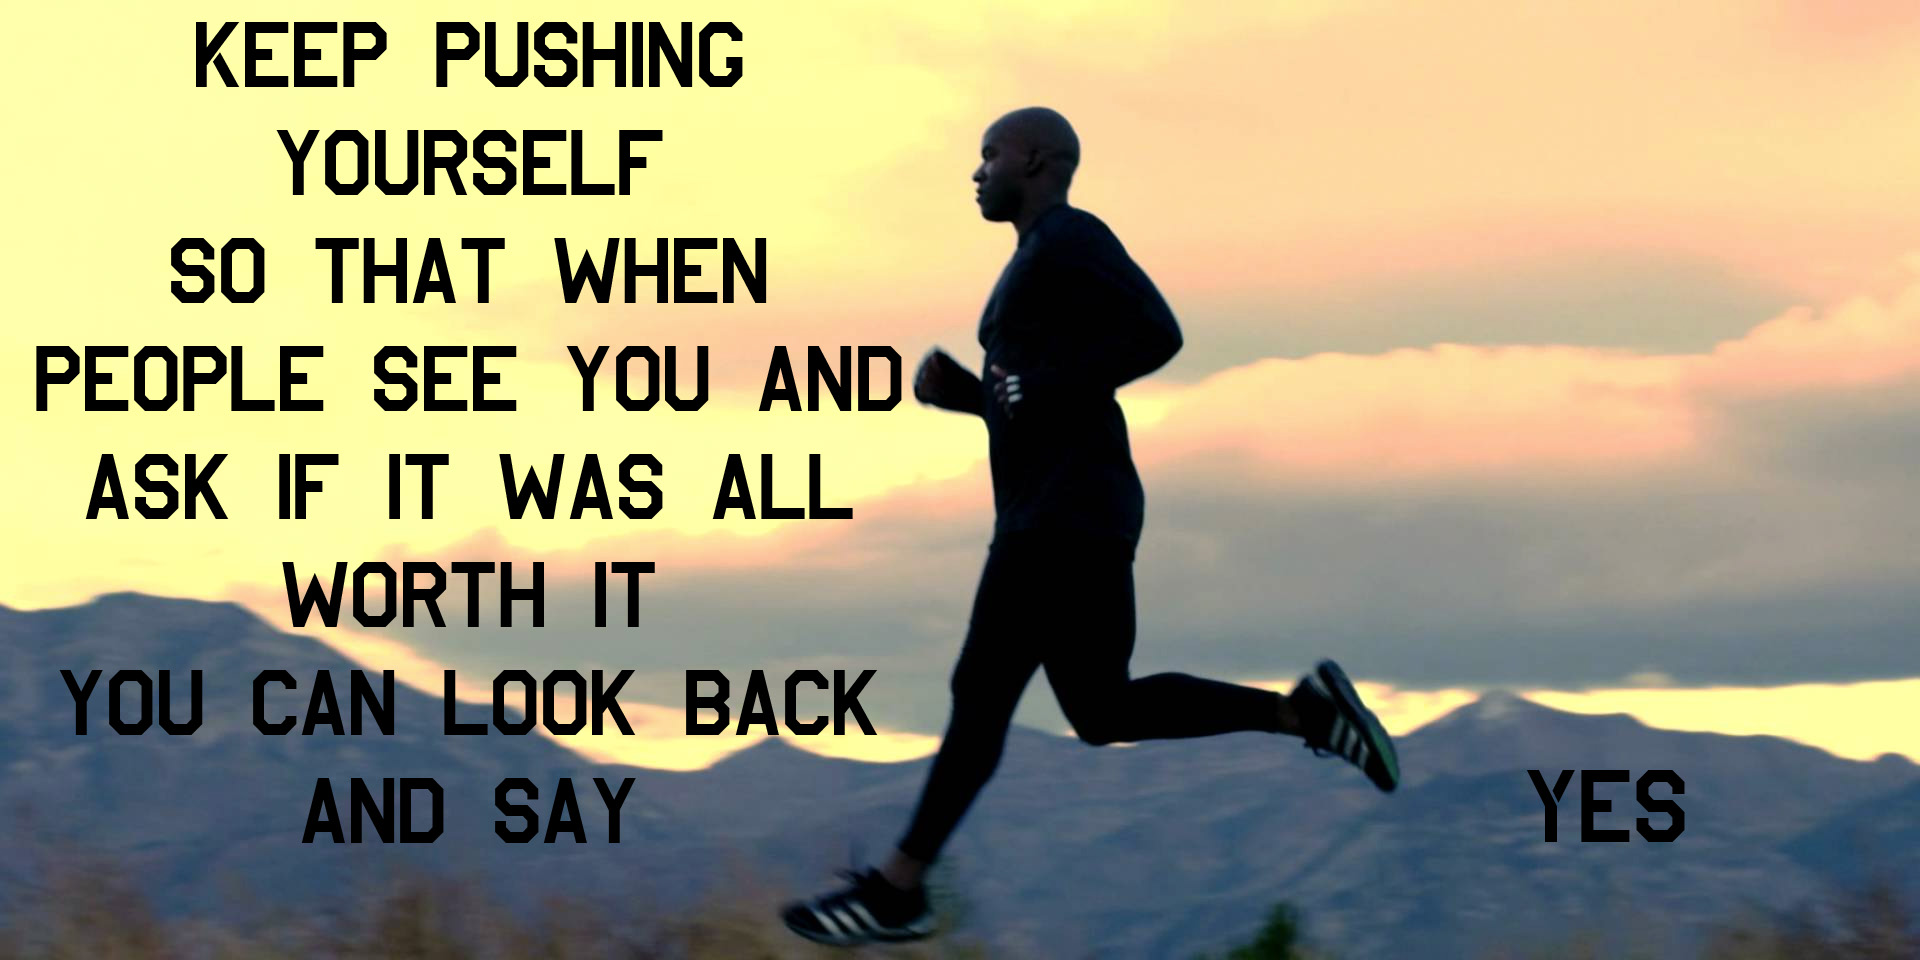 Keep Pushing Yourself Fitness Daily Quotes Sayings Pictures